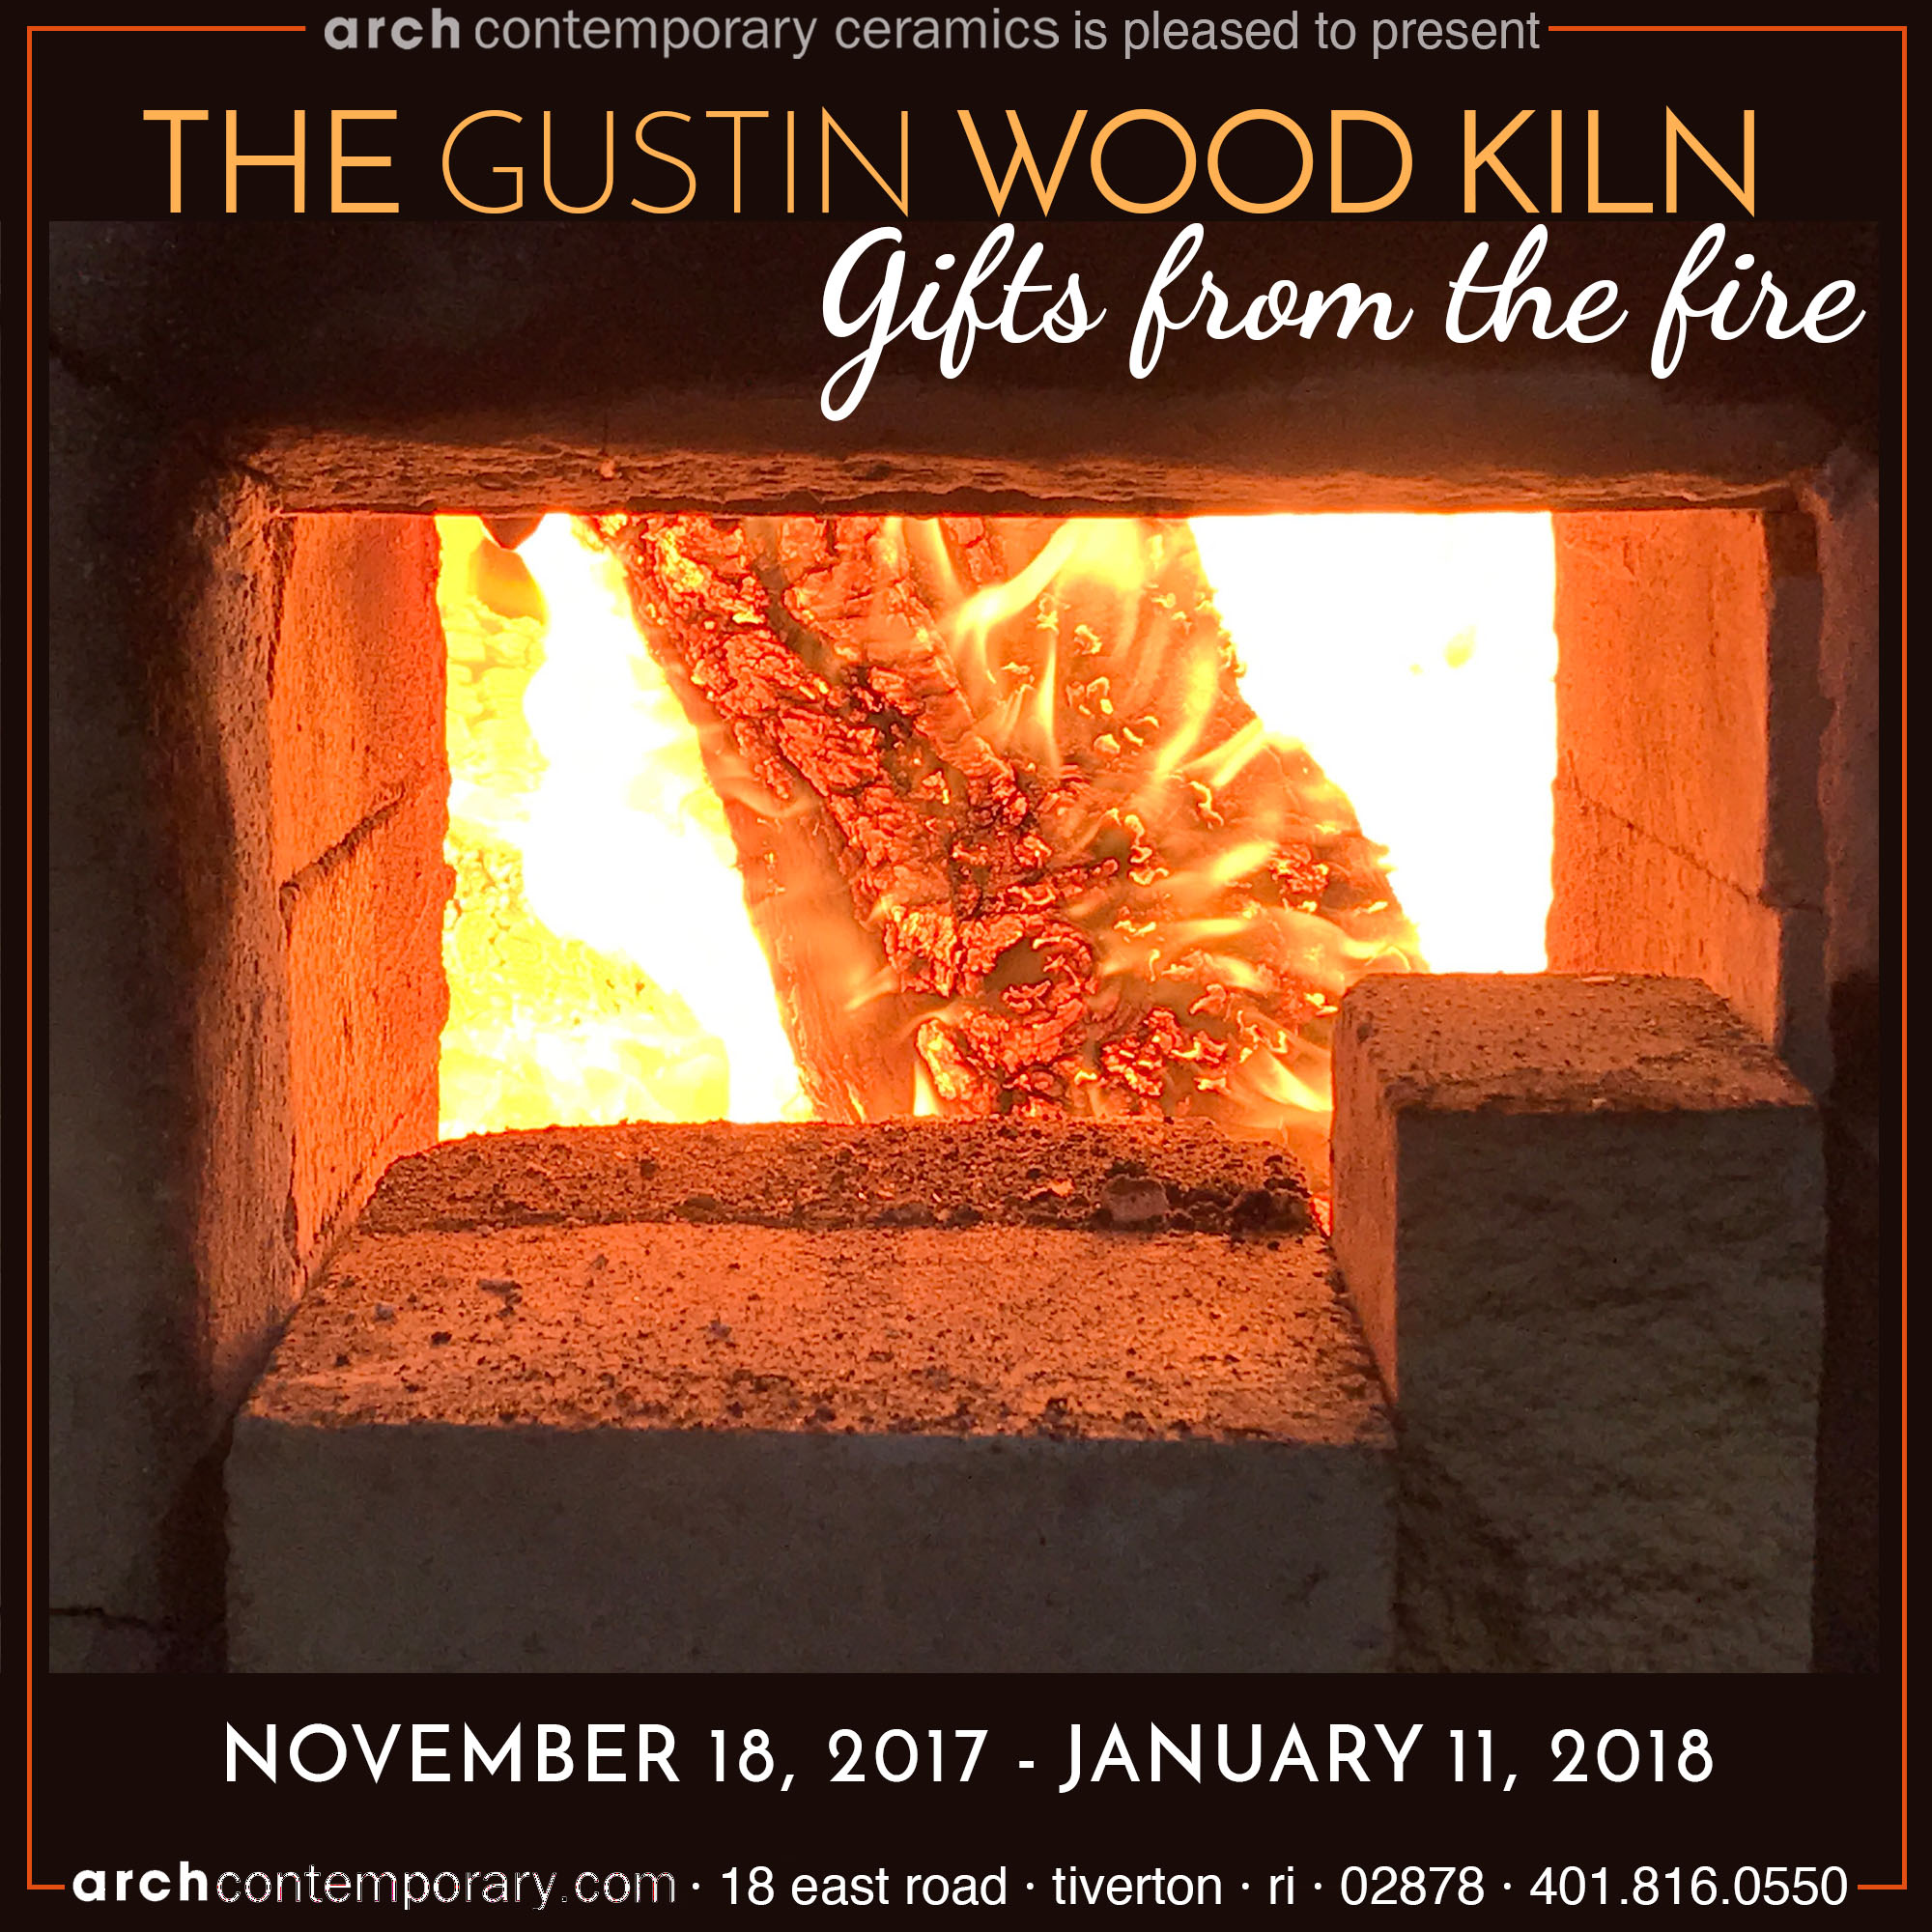 THE GUSTIN WOOD KILN: GIFTS FROM THE FIRE